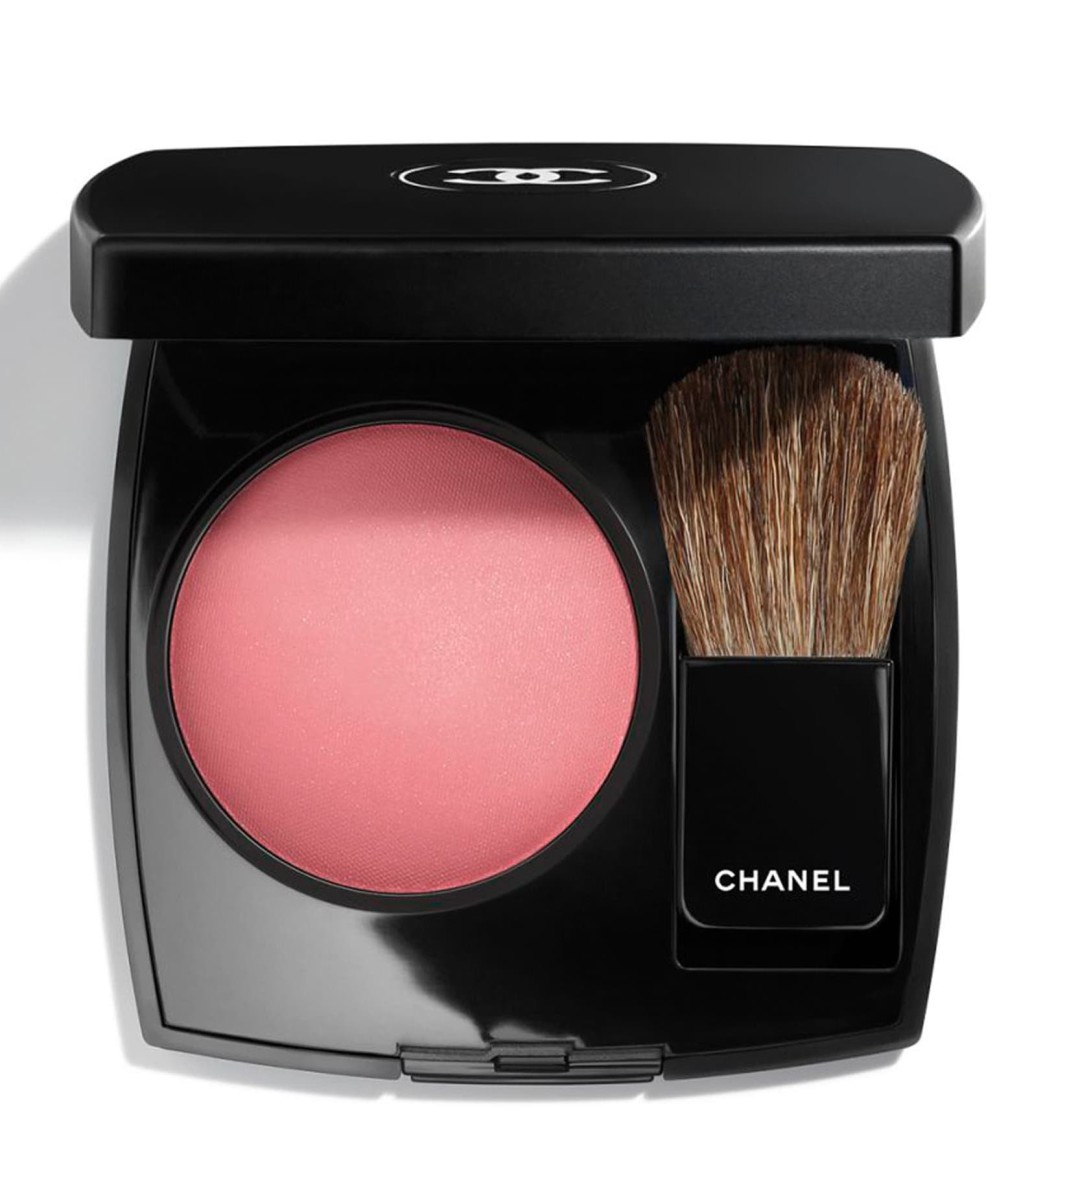 Chanel Joues Contrast in Quintessence, $45, available here.